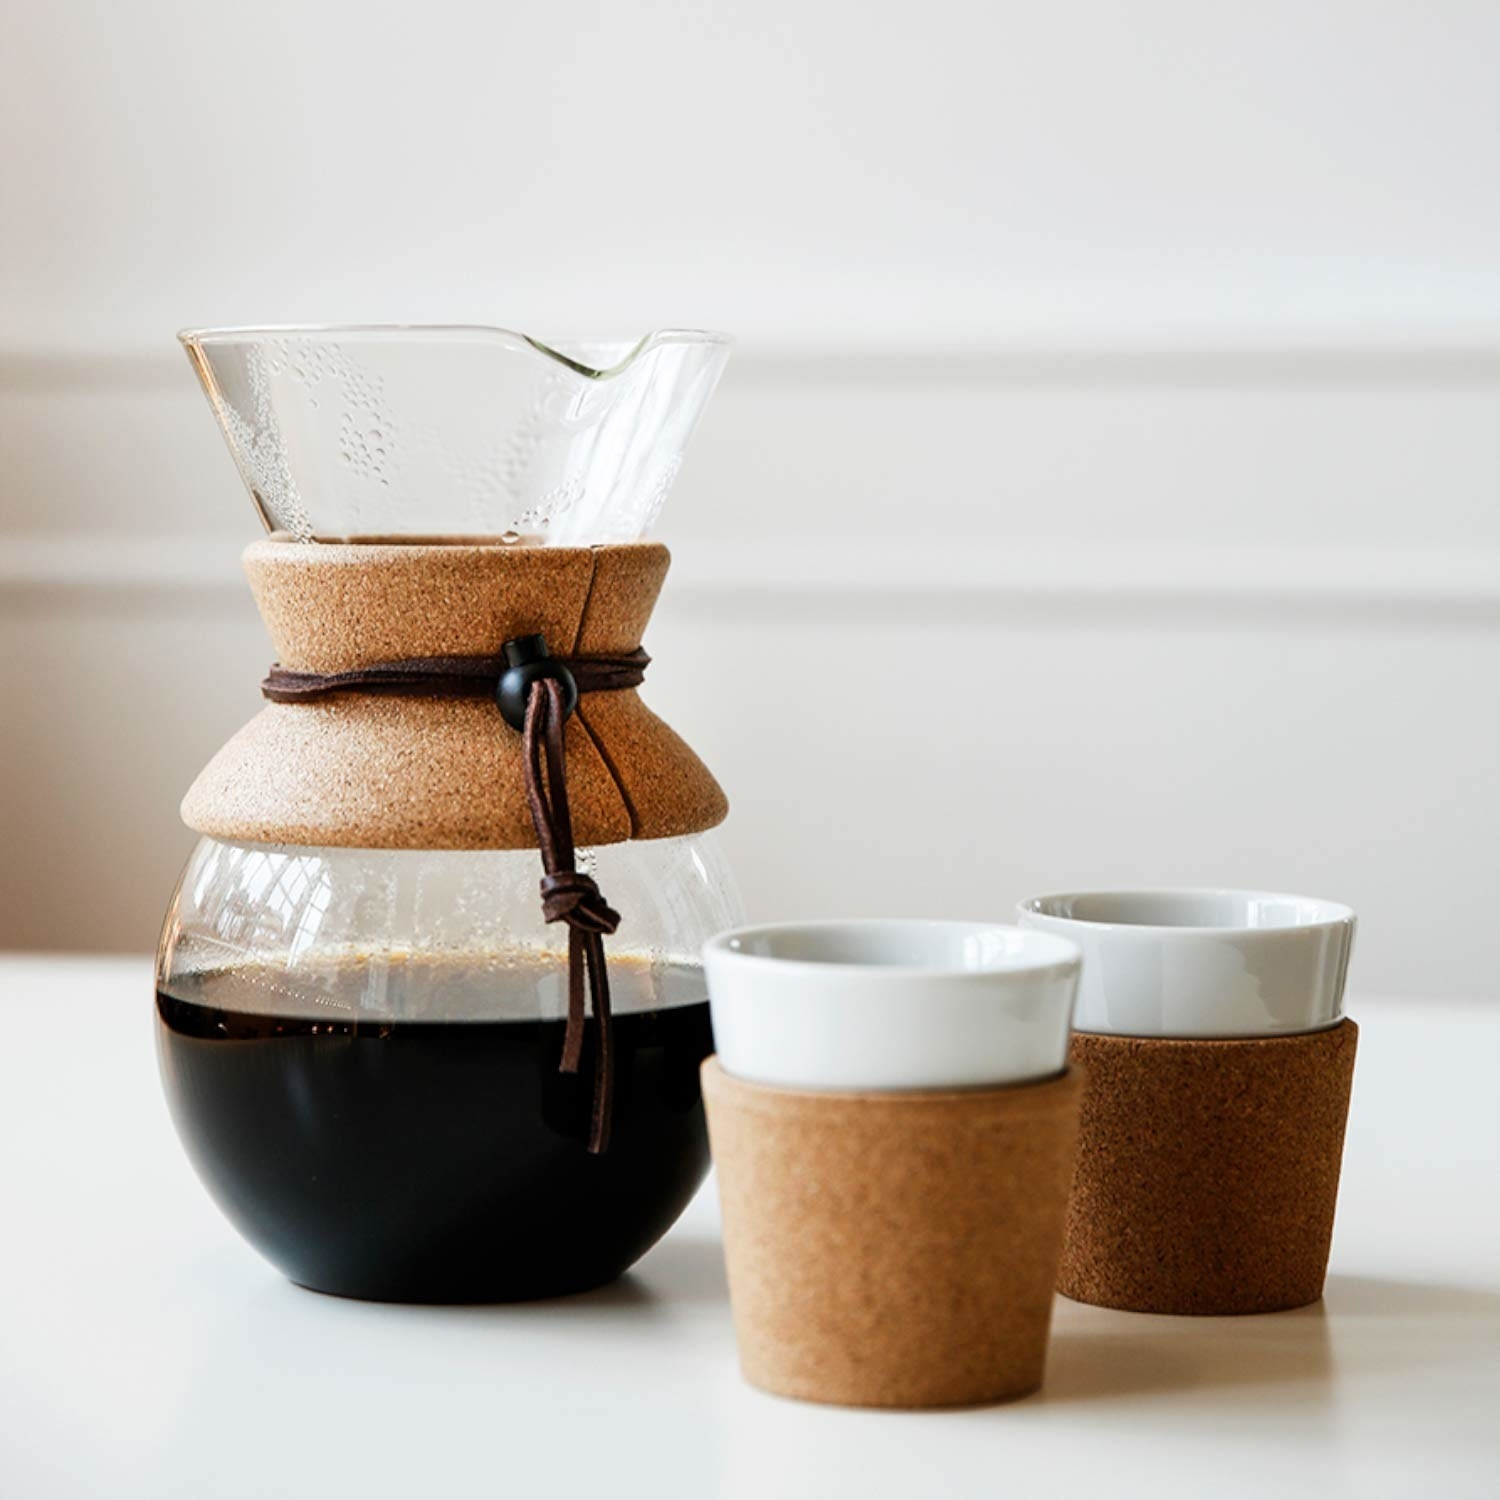 the glass coffee maker